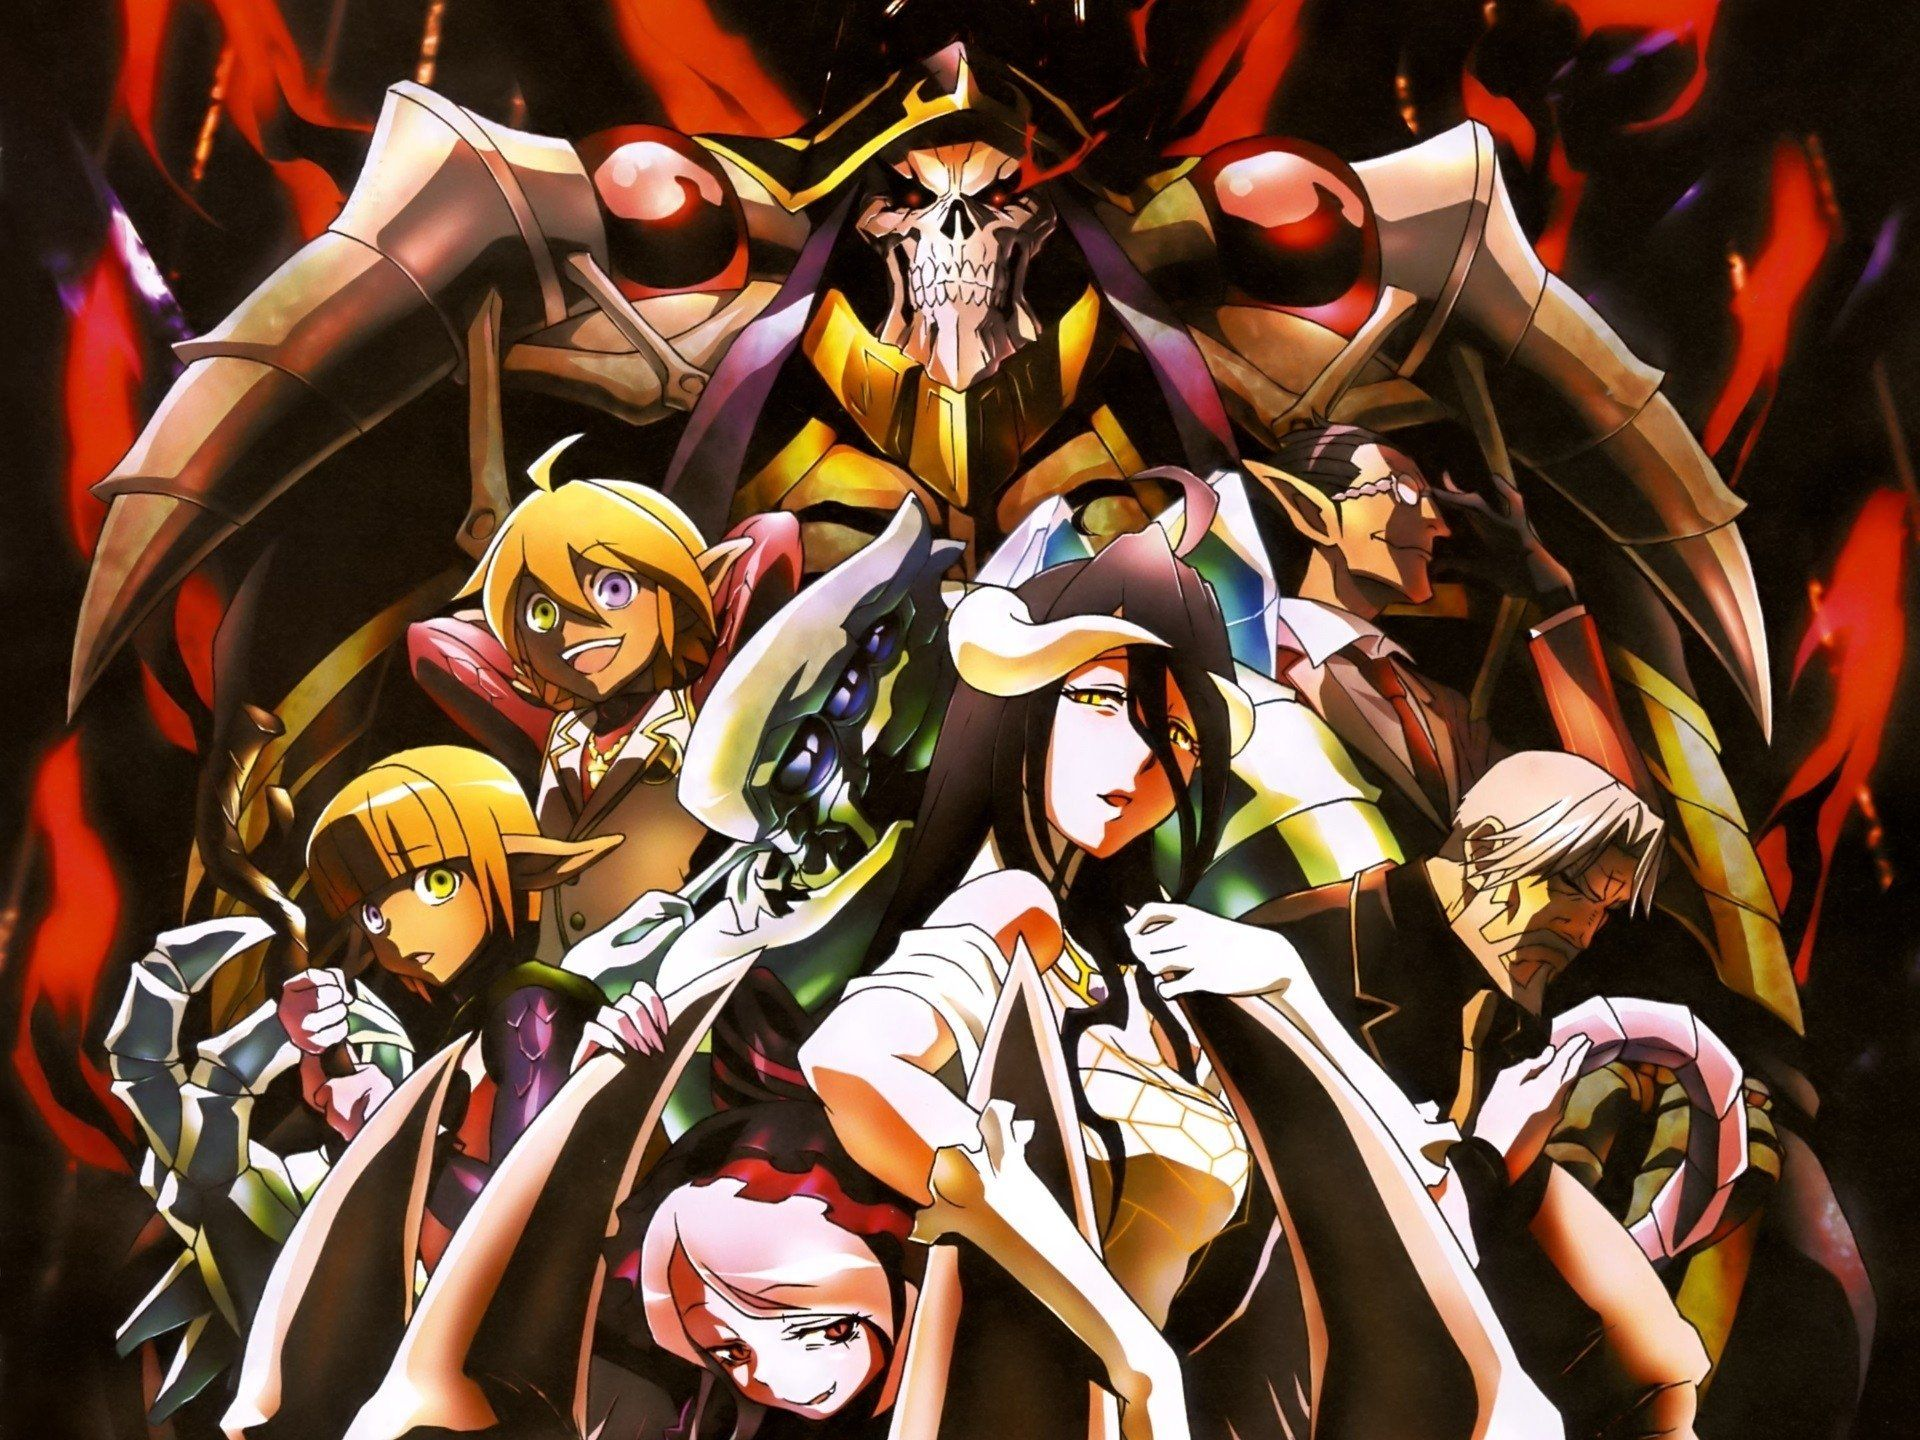 Overlord Anime Wallpapers Top Free Overlord Anime Backgrounds Wallpaperaccess